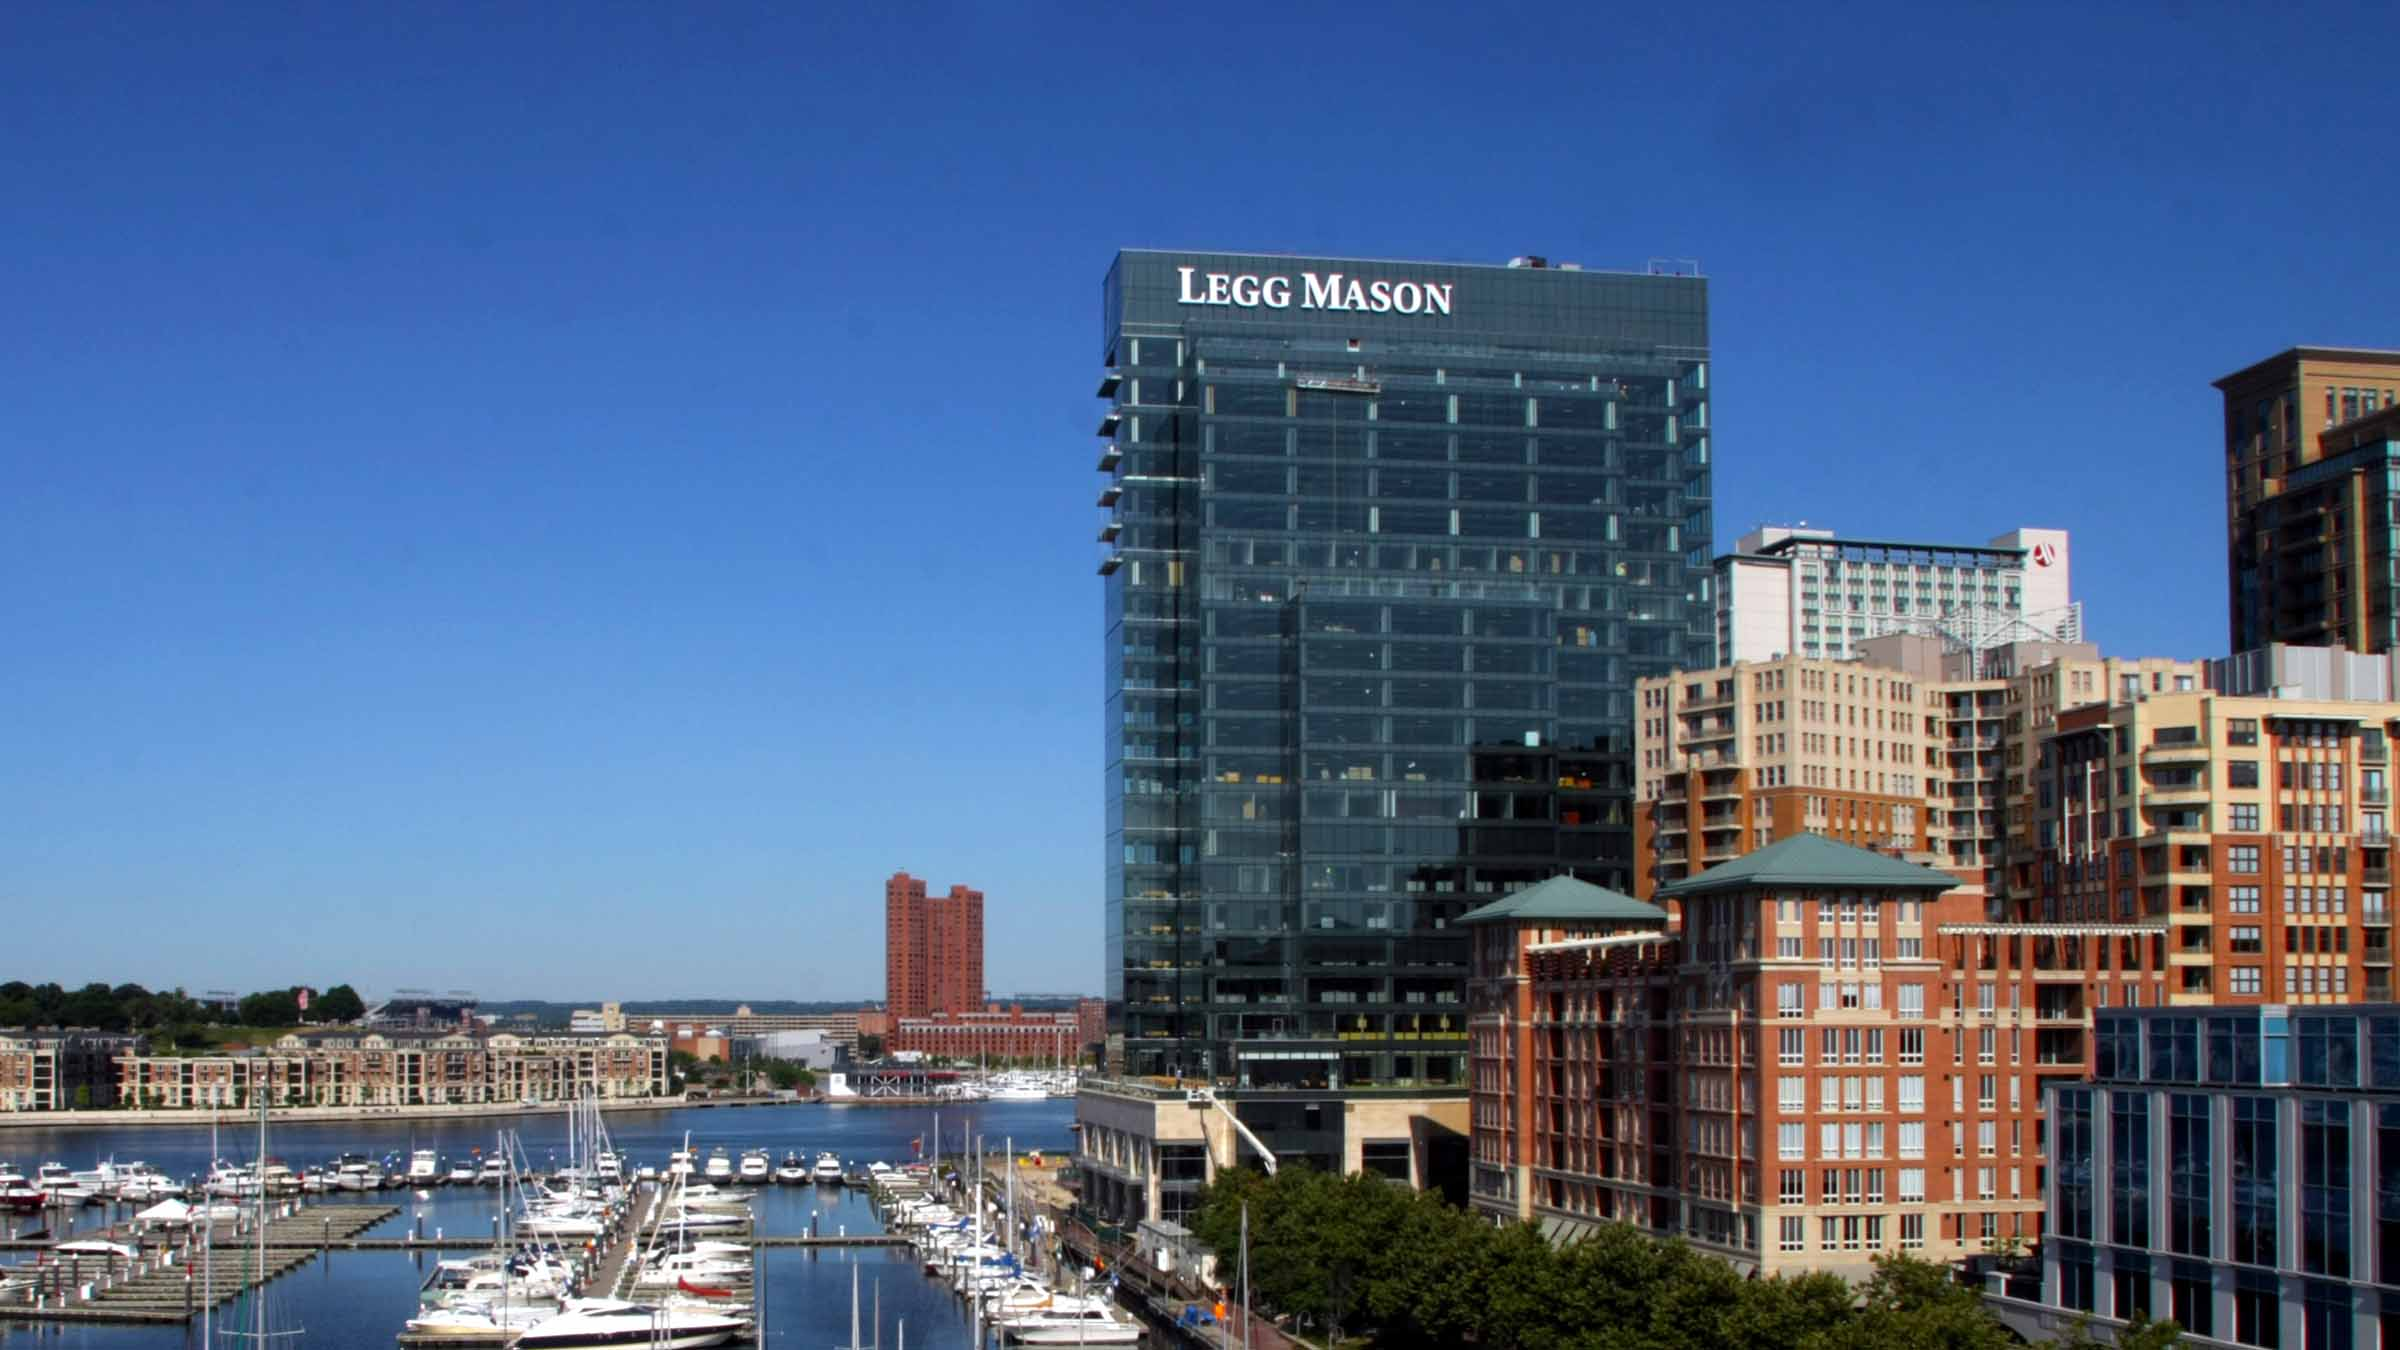 baltimore-harbor-legg-mason-building